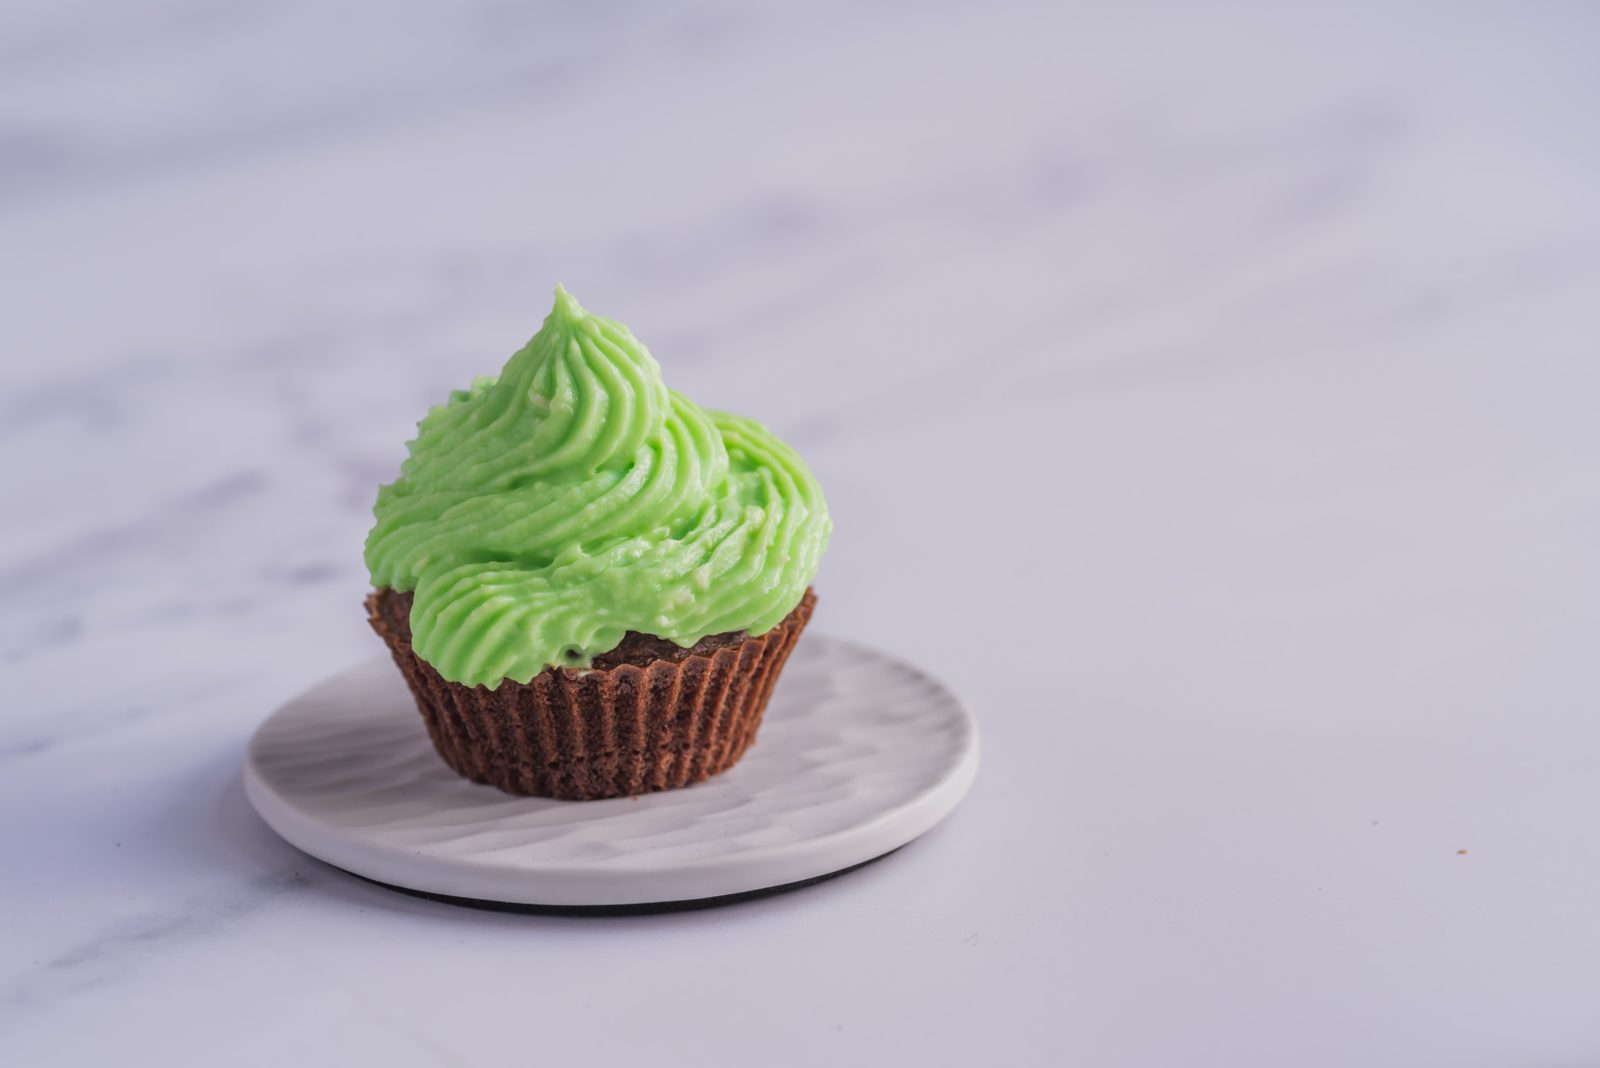 glaçage menthe - food photography